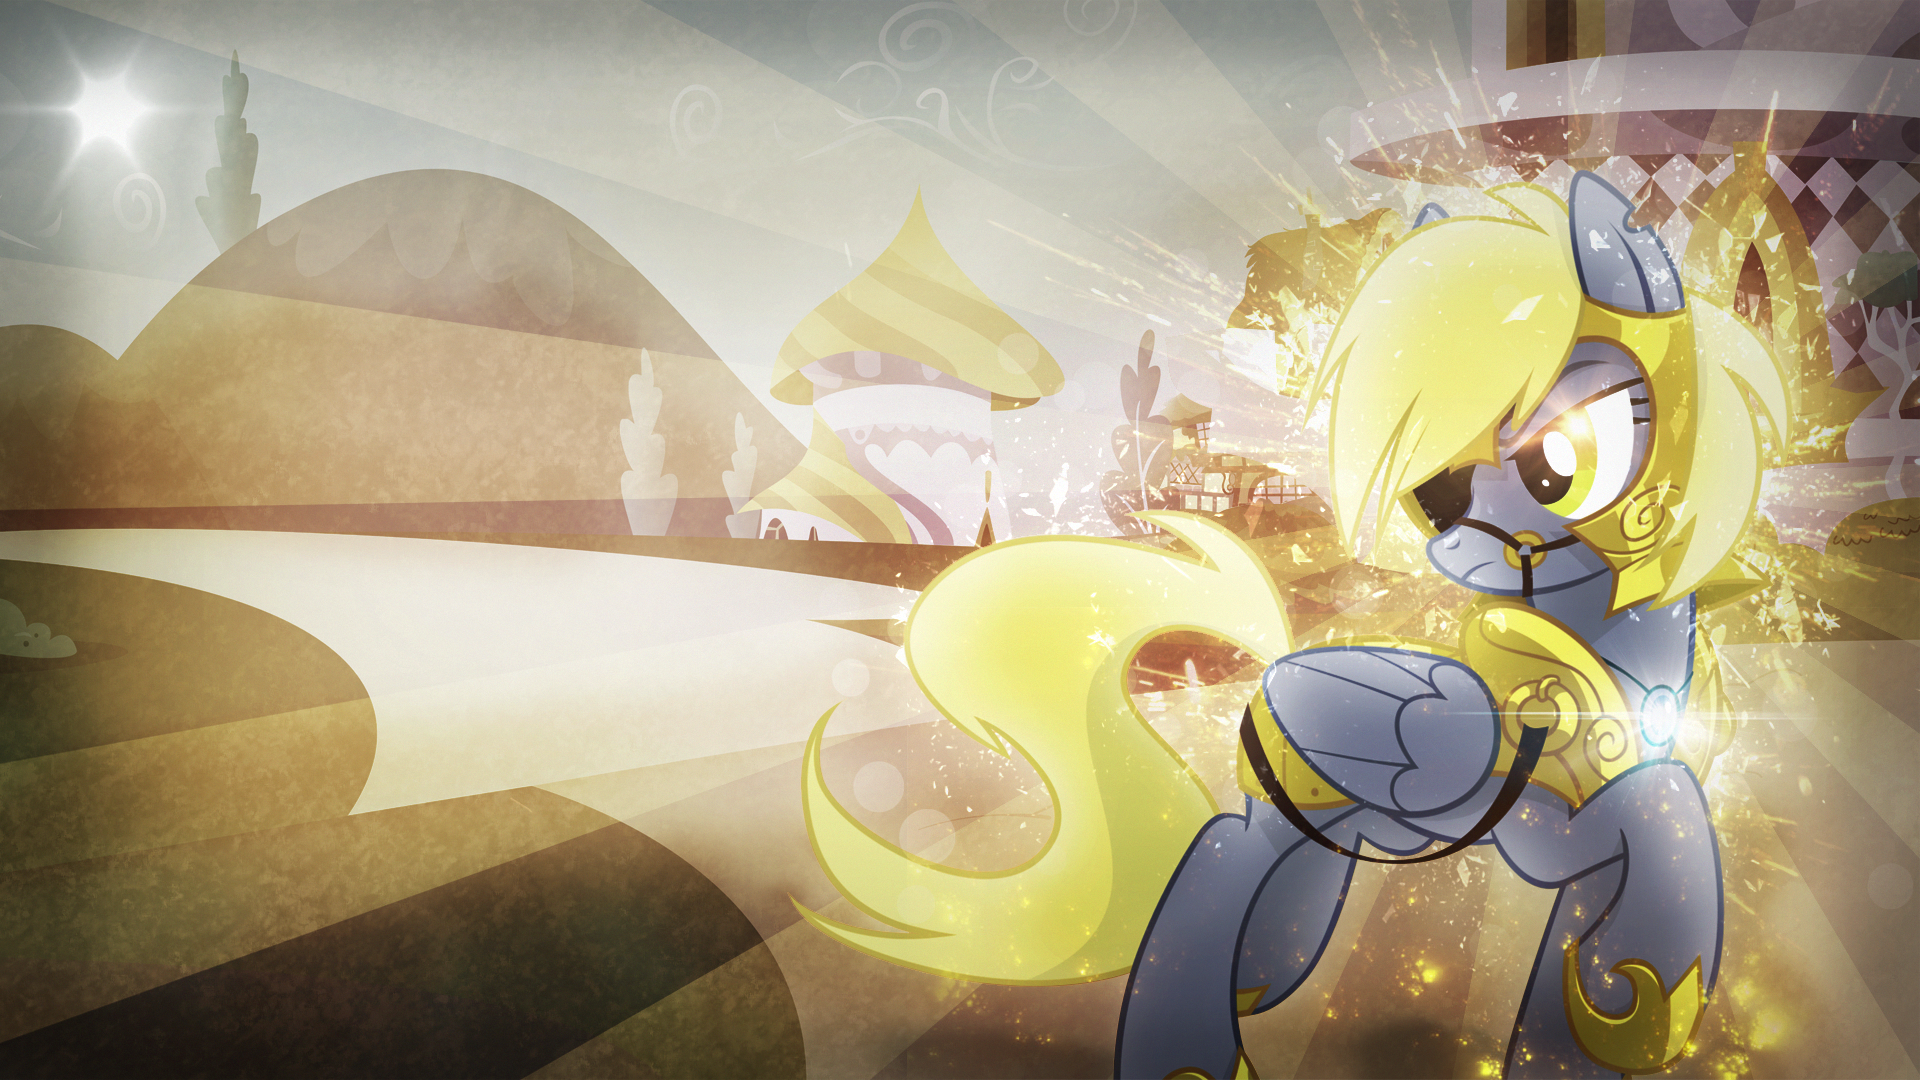 Wallpaper ~ General Derpy. by Equestria-Prevails, kenrick55, Mackaged and Trotsworth